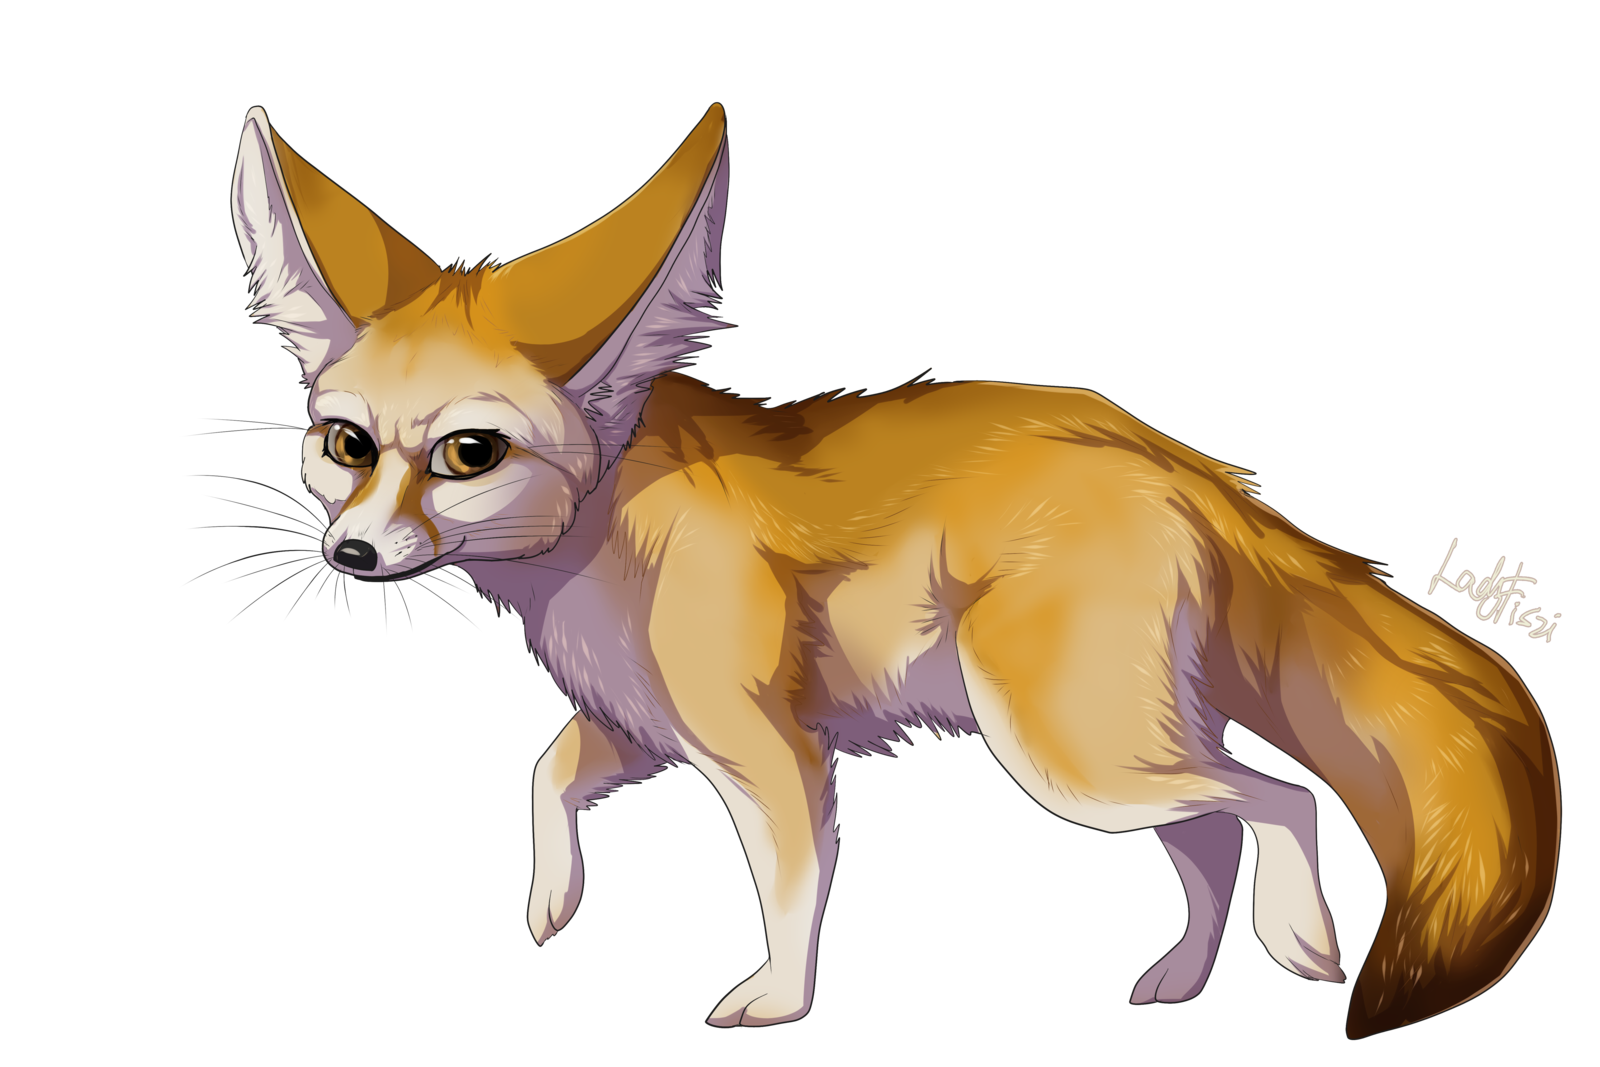 Fox Png - Fennec Fox PNG Transparent Image